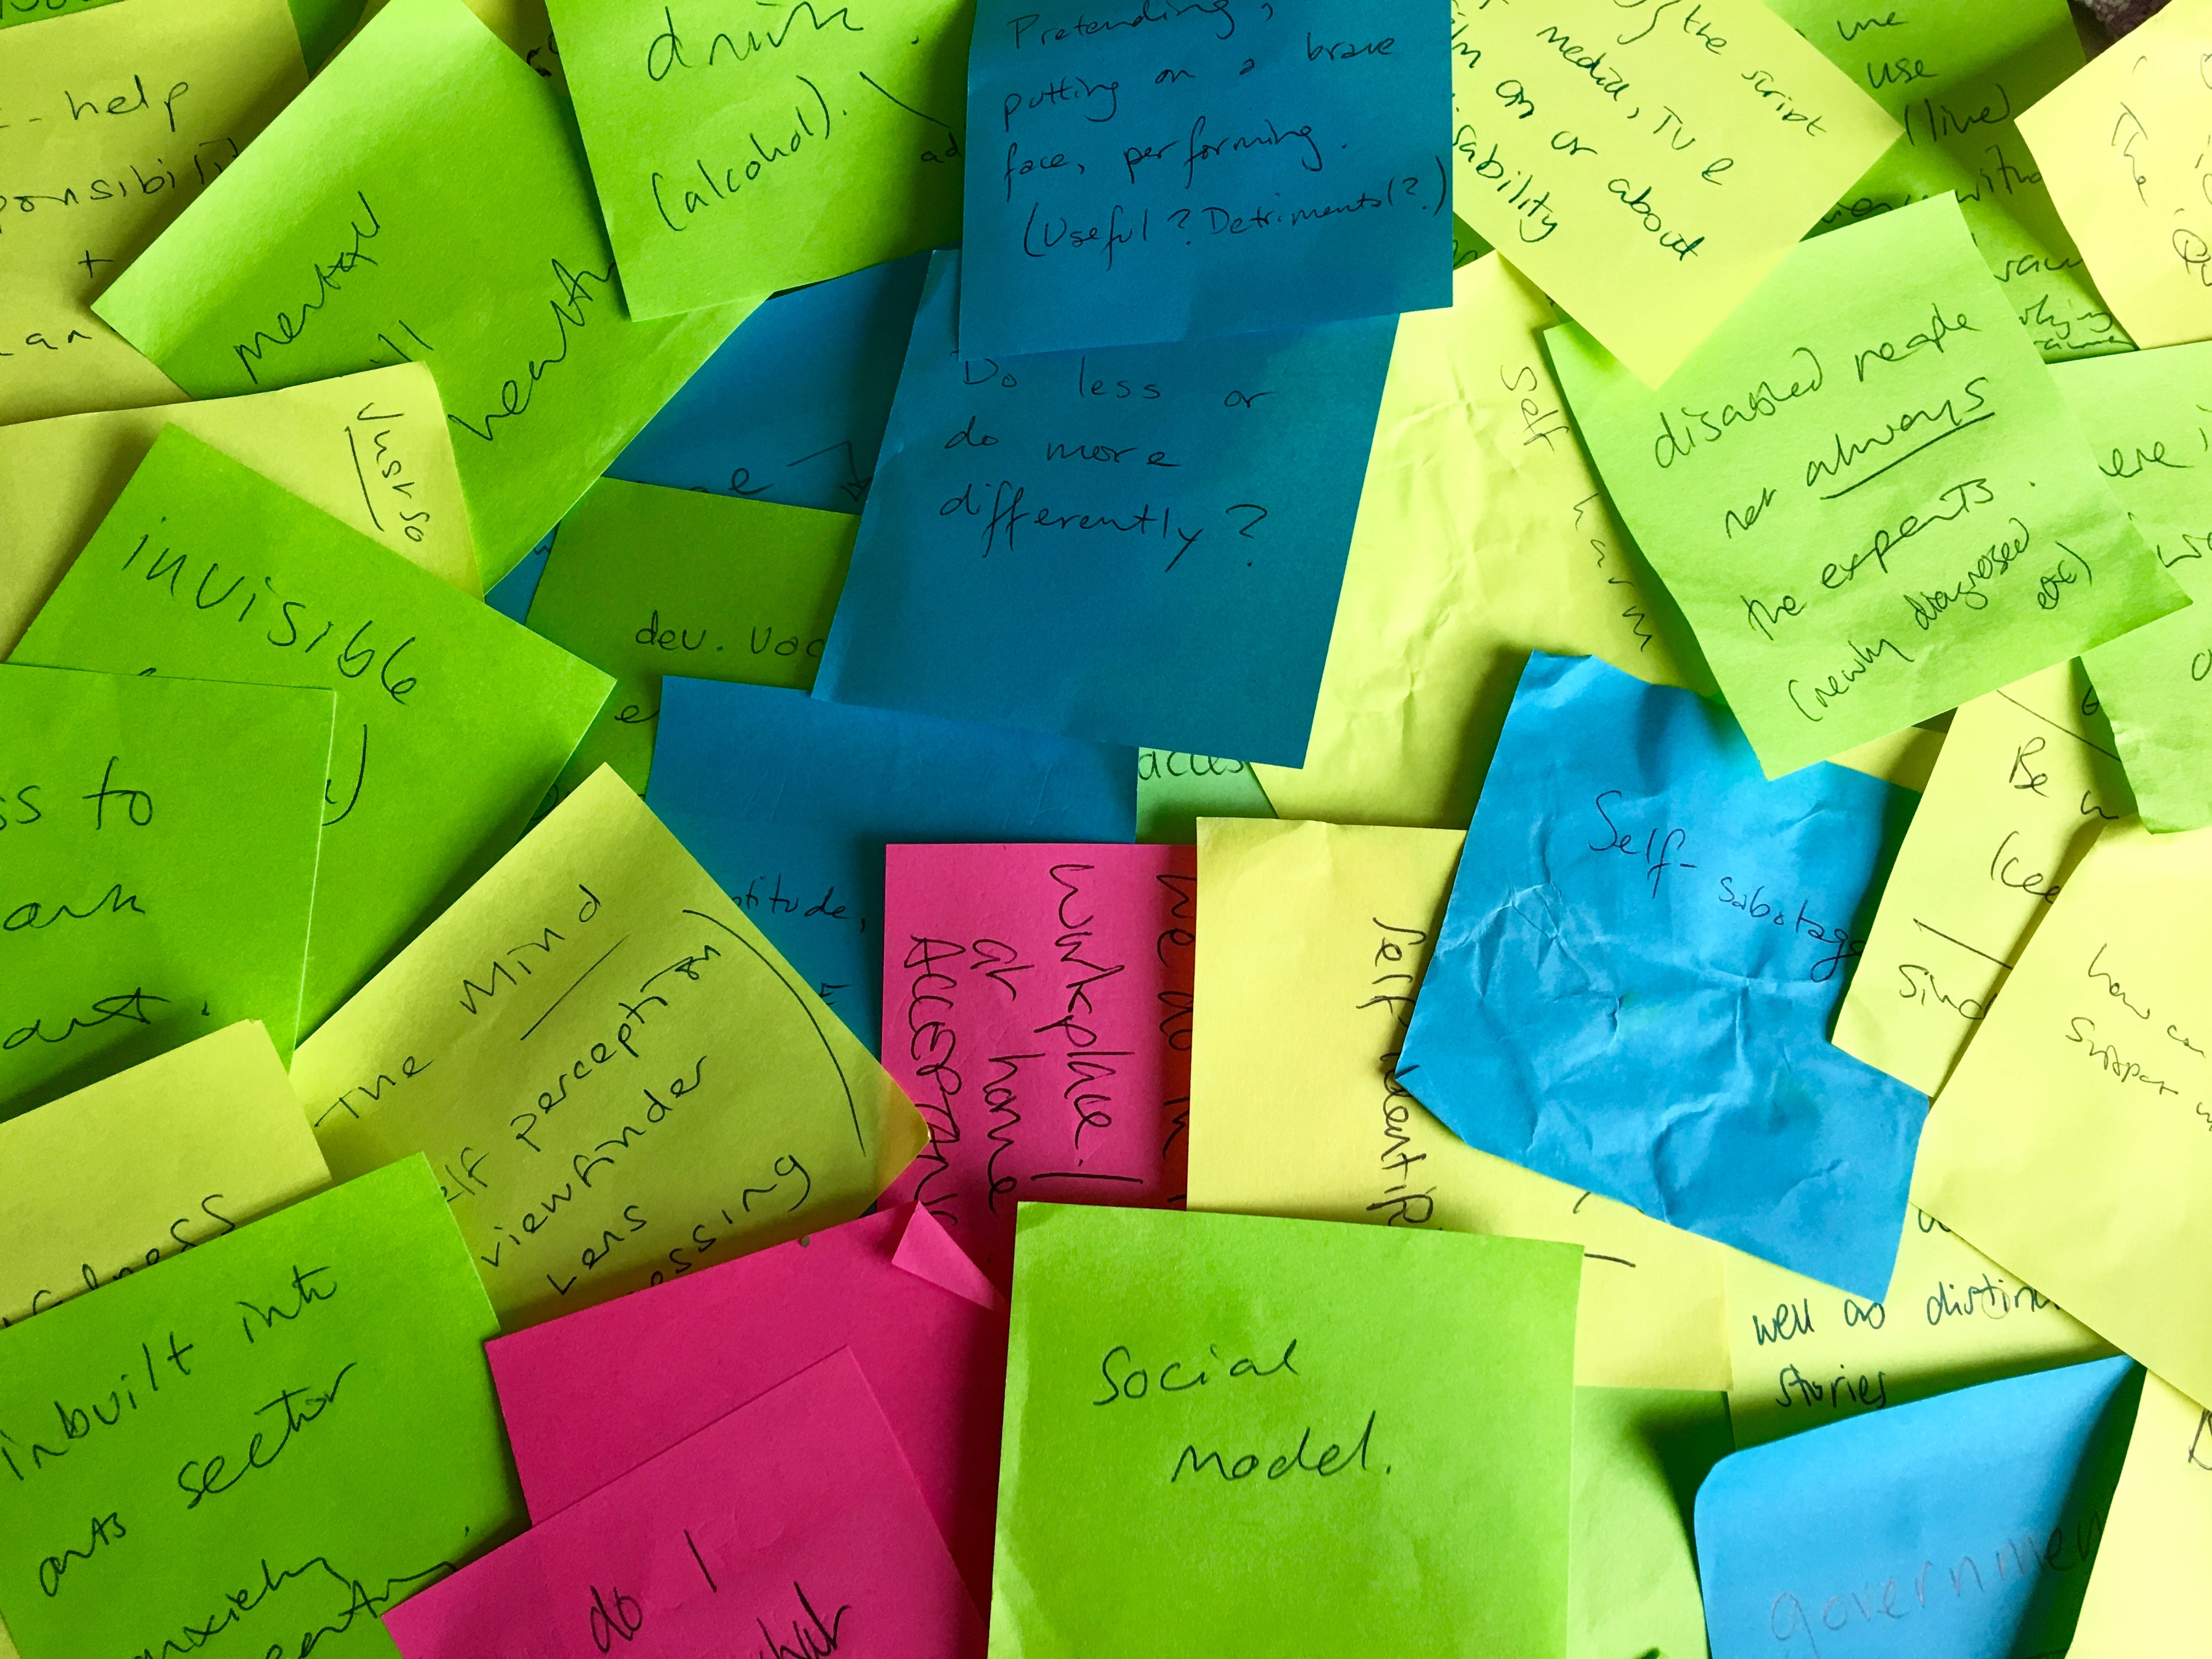 An image of lots of different coloured post-it notes which have hand written notes on them such as social model and do less or do differently?